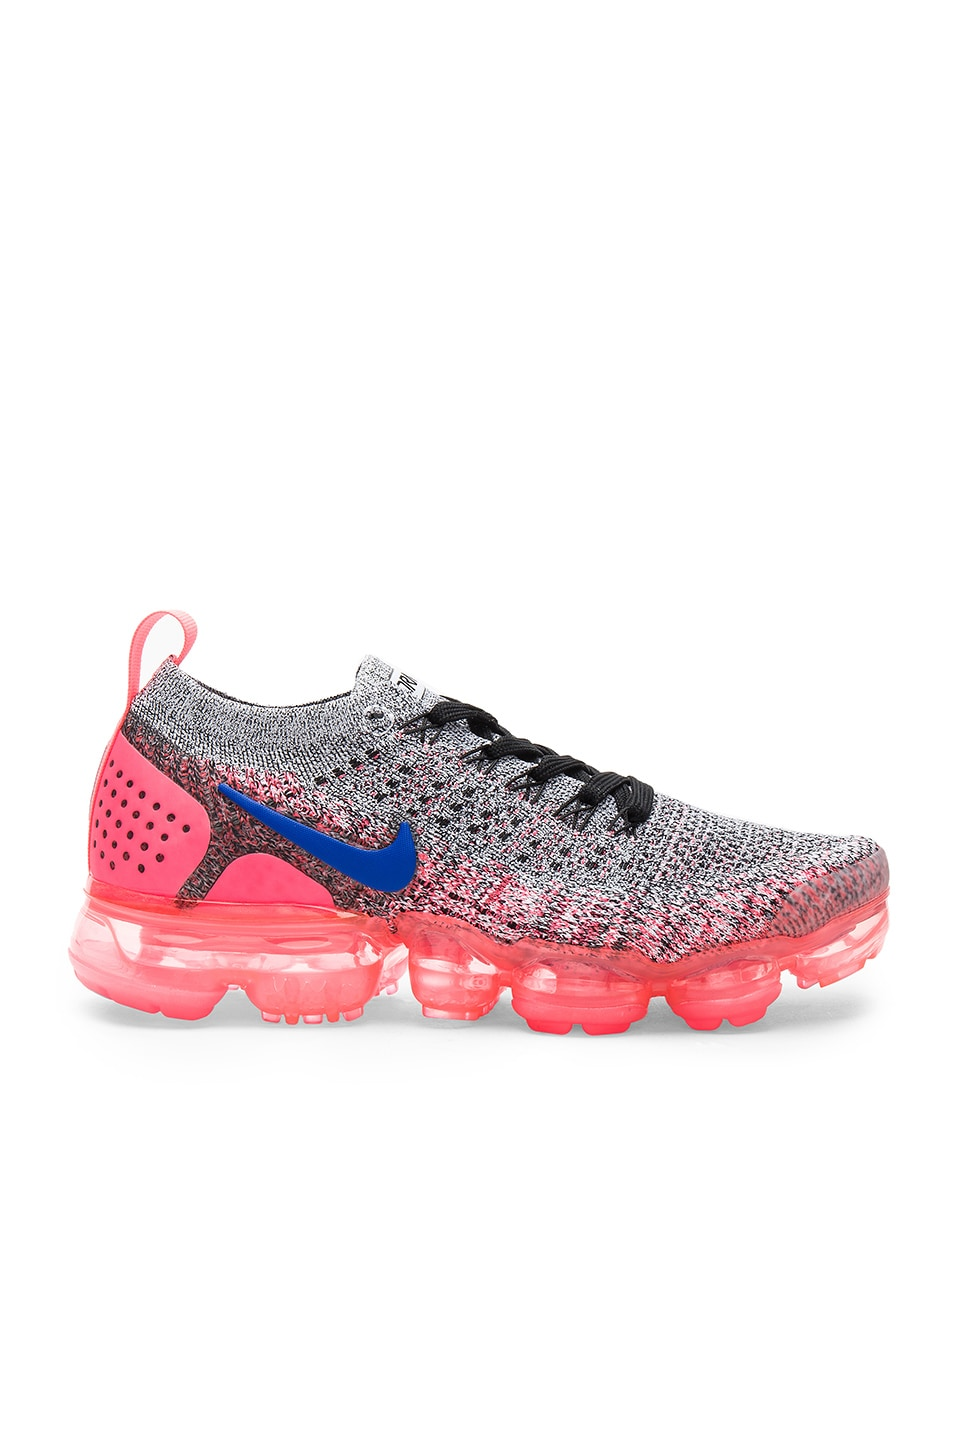 AIR VAPORMAX FLYKNIT 2 RUNNING SHOE